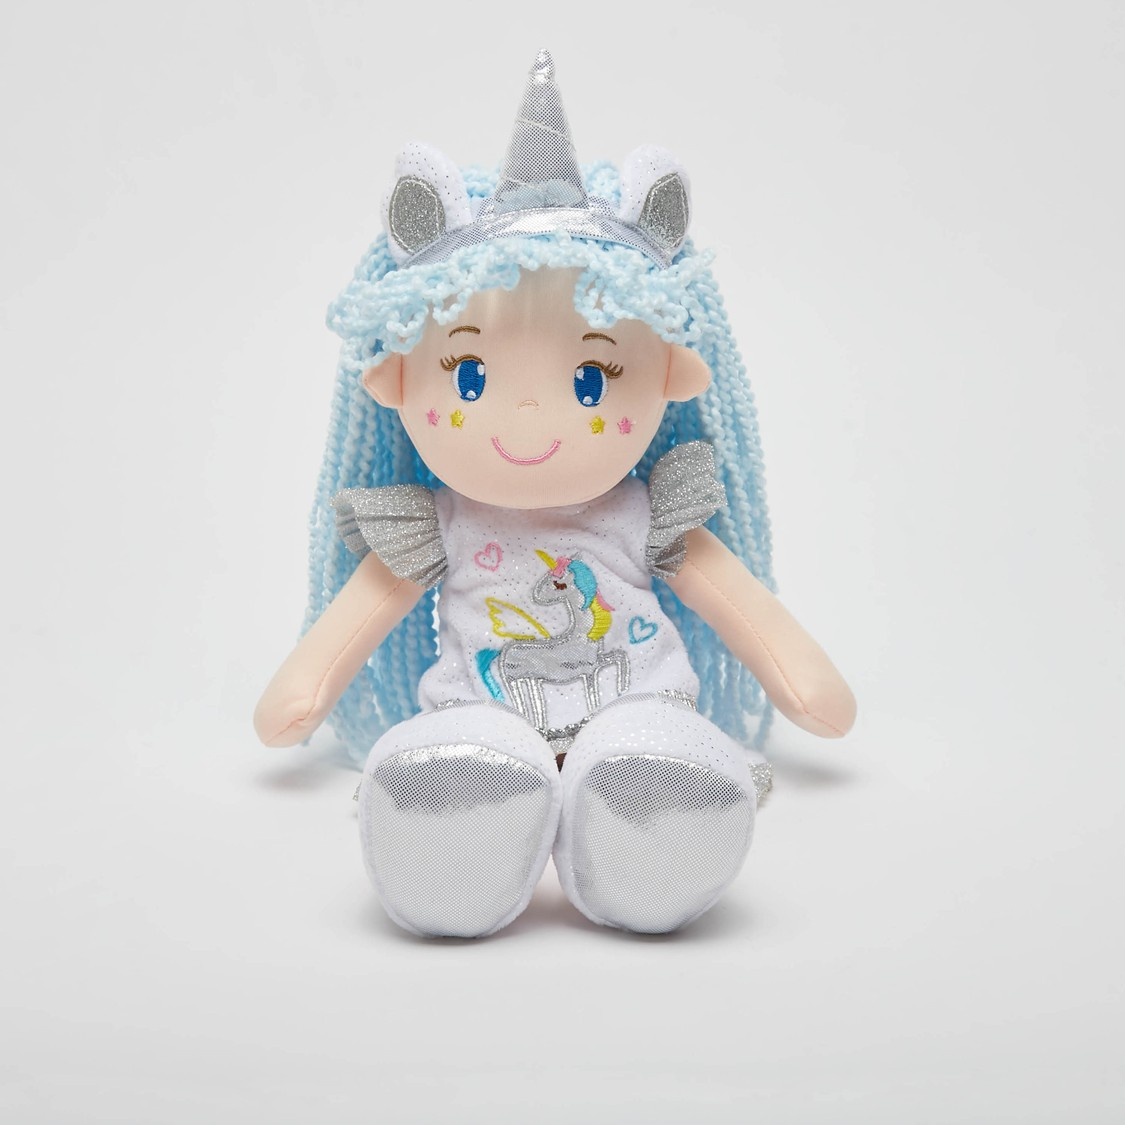 Doll Soft Toy in Glittery Dress and Unicorn Crown